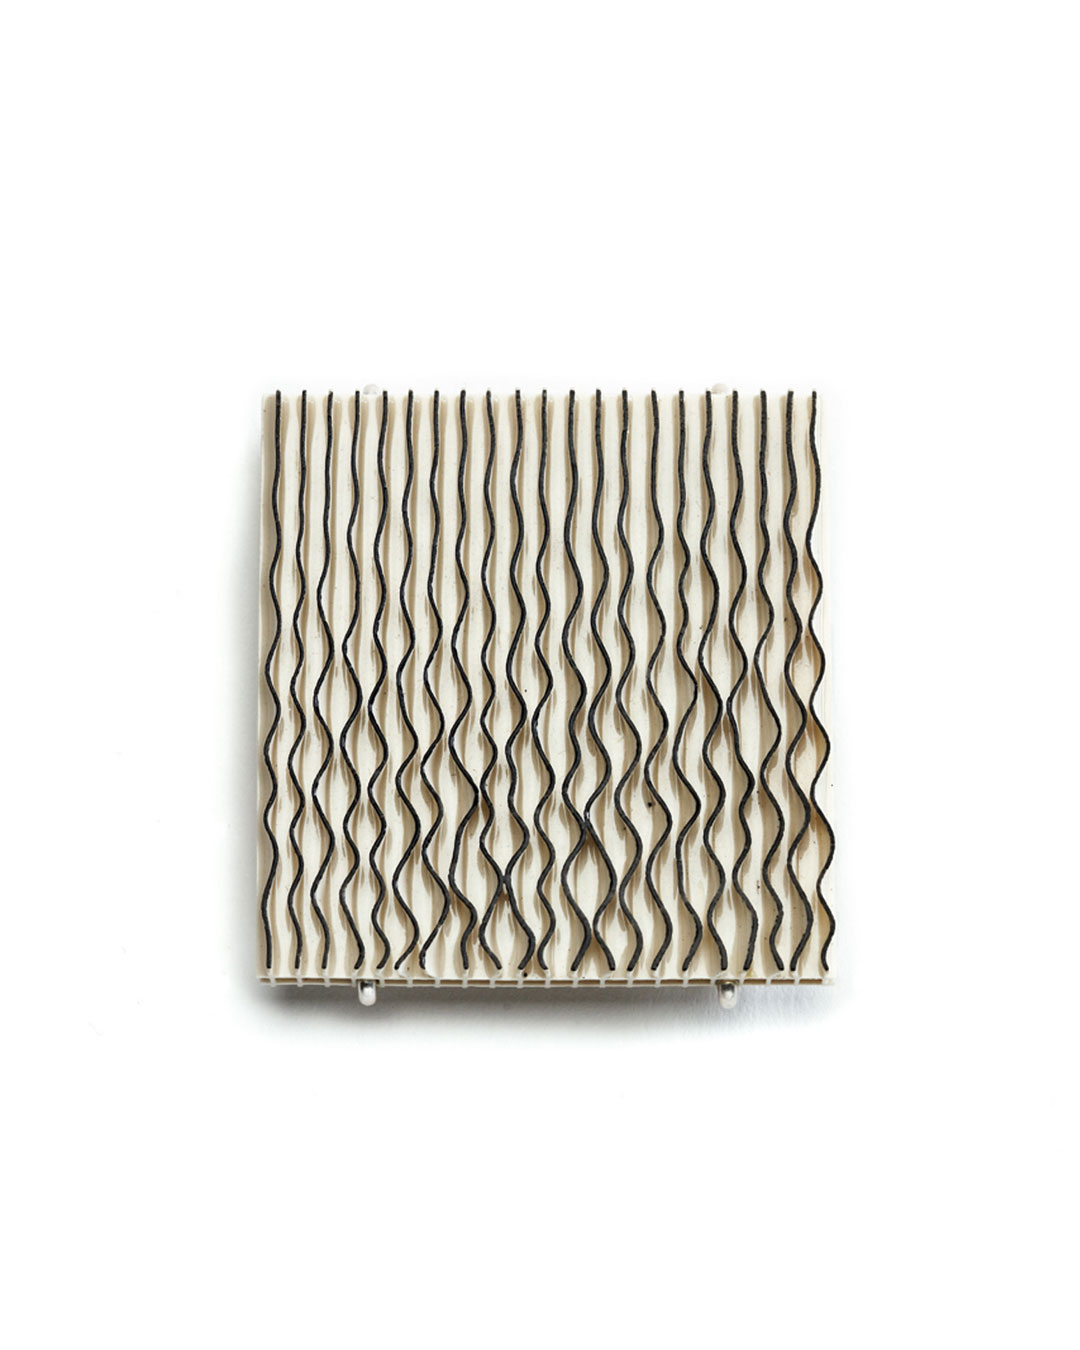 Silke Trekel, Strömung (Current), 2017, brooch; porcelain, silver, 57 x 54 x 7 mm, €920